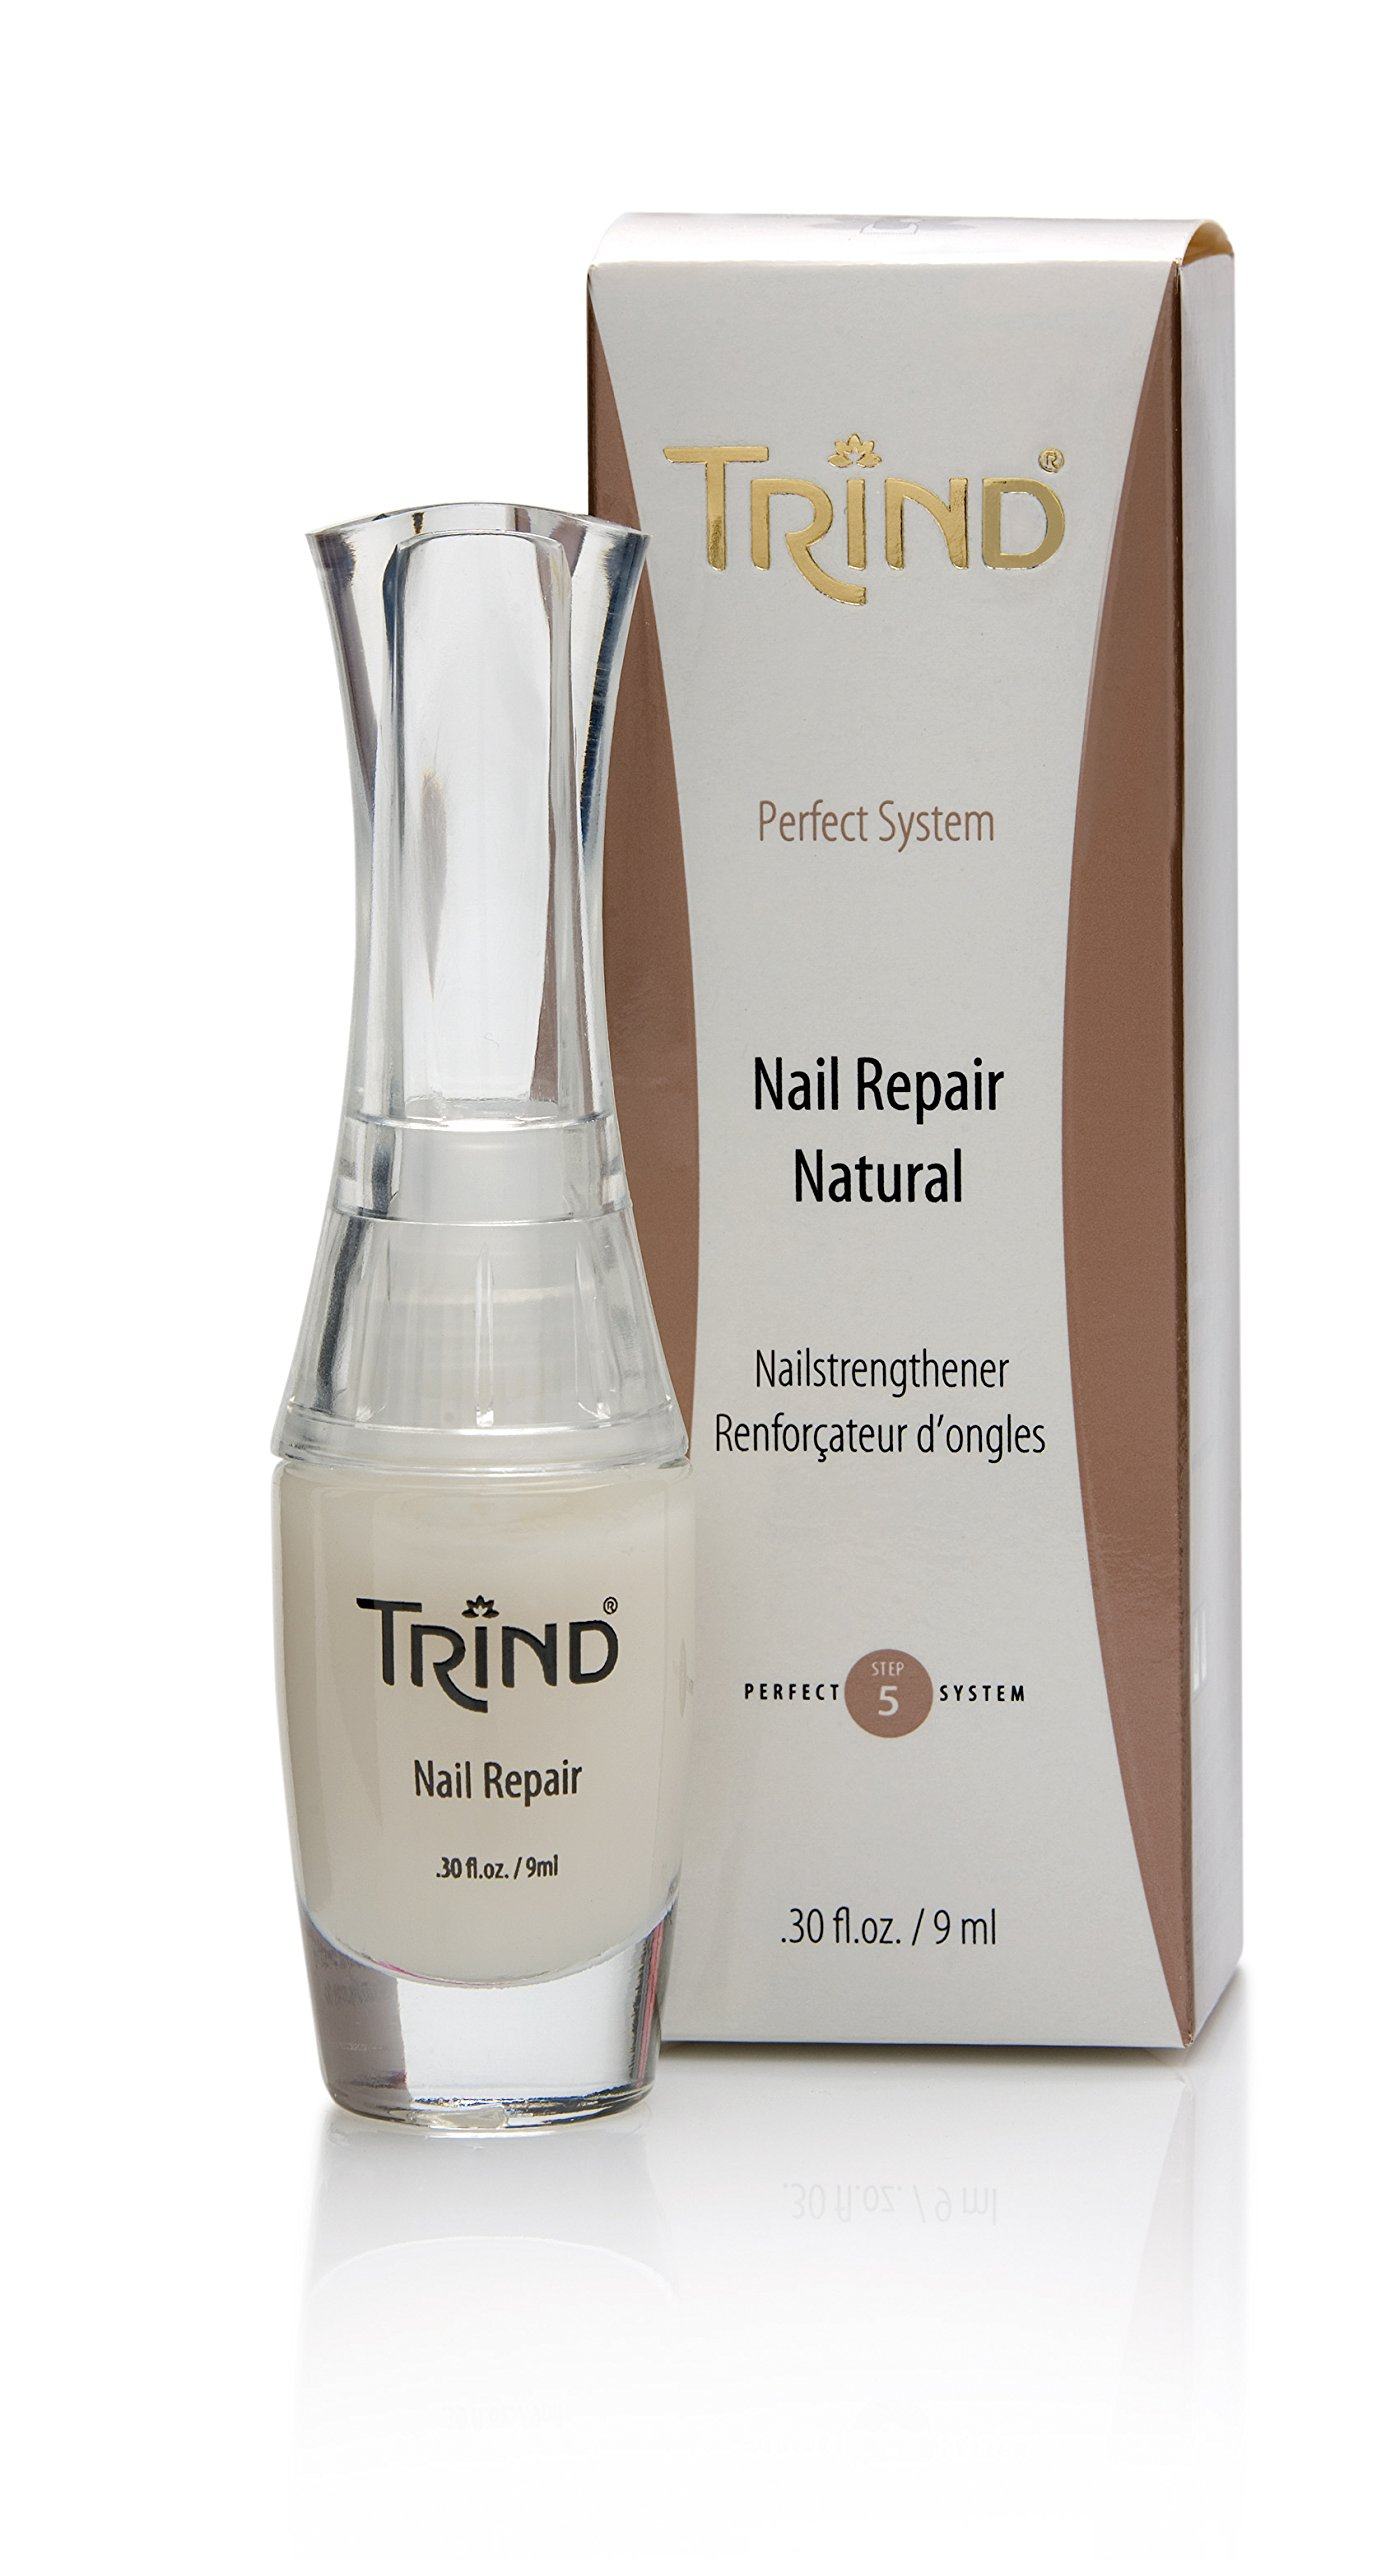 Trind Natural Nail Repair by Trind Hand and Nail Care